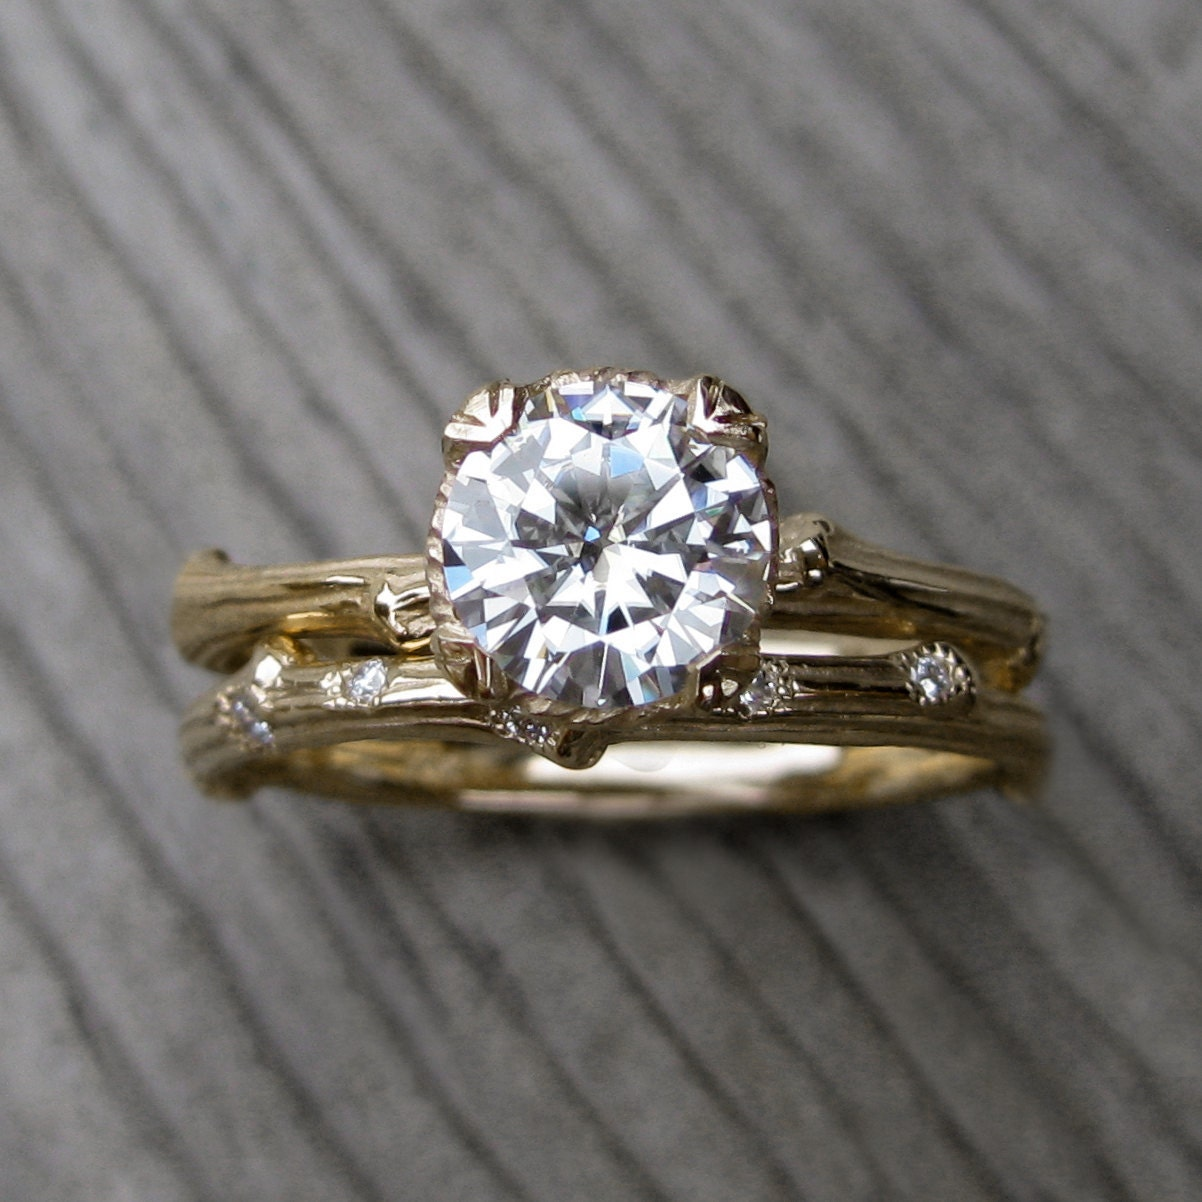 Moissanite Twig Engagement & Wedding Ring Set By. Nursing Engagement Rings. Blue Nile Studio Petite French Pavé Crown Diamond Engagement Rings. Pisces Rings. Satin Rings. Gothic Style Wedding Rings. Couple Gold Wedding Rings. Thunderfit Rings. 50 Year Rings